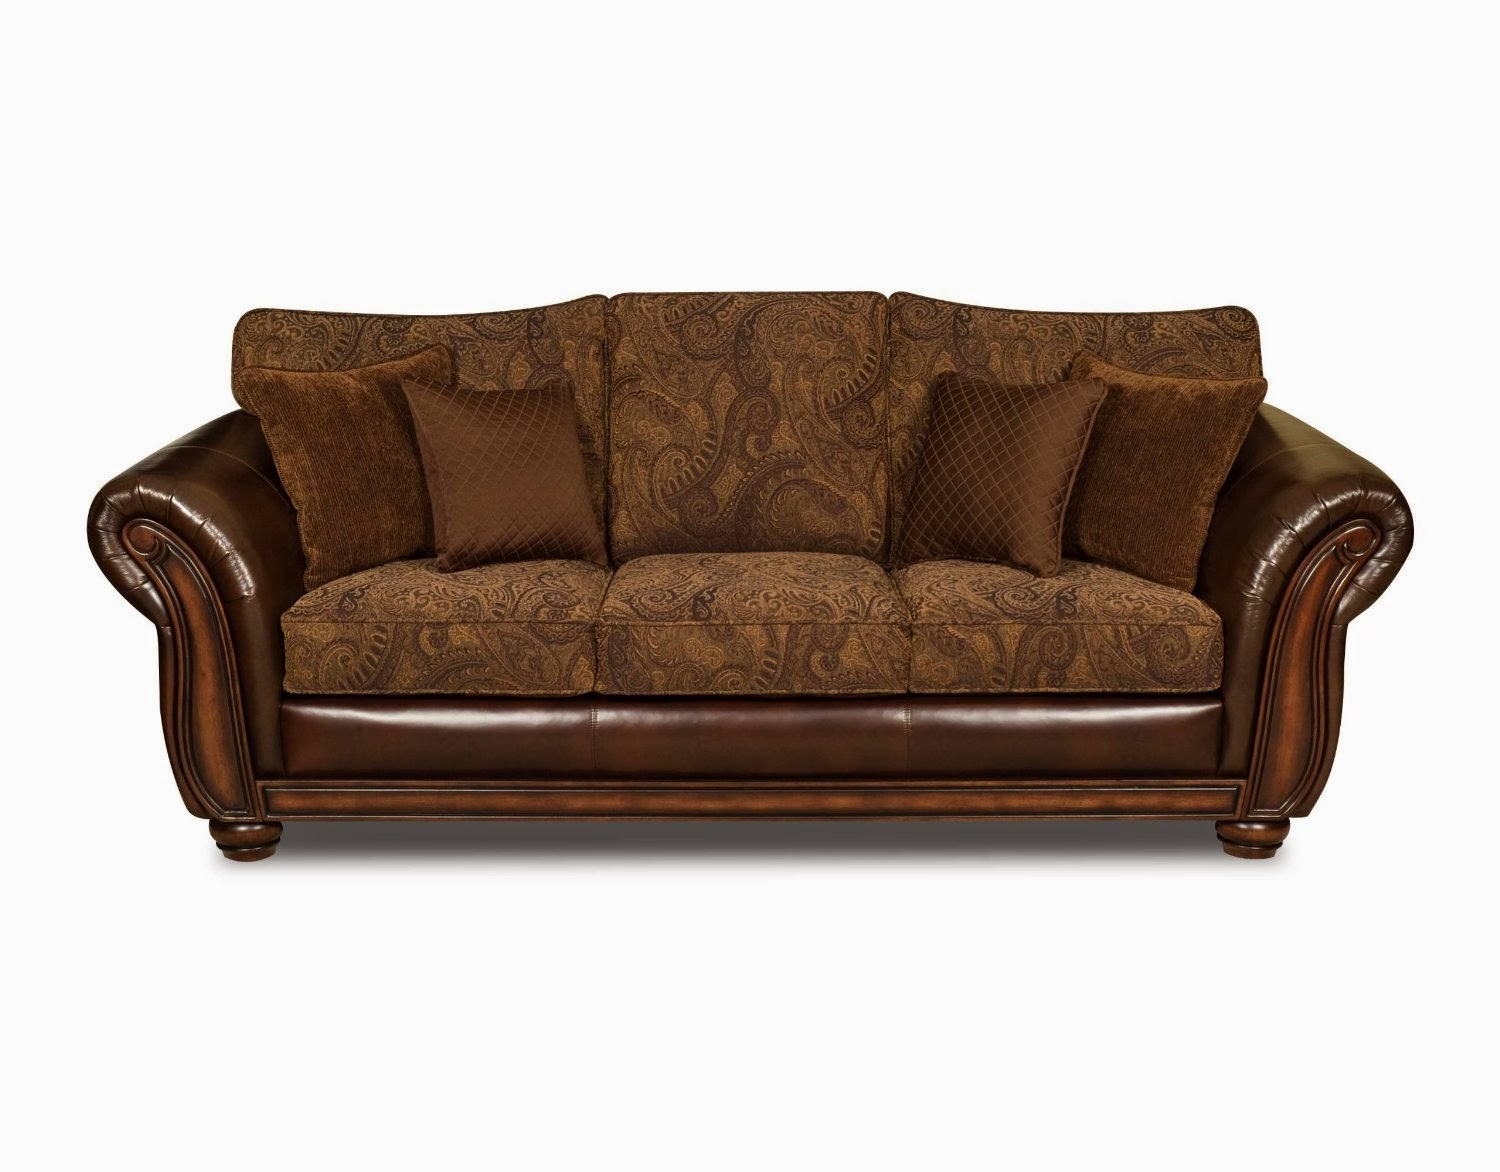 Vintage couch Retro loveseats